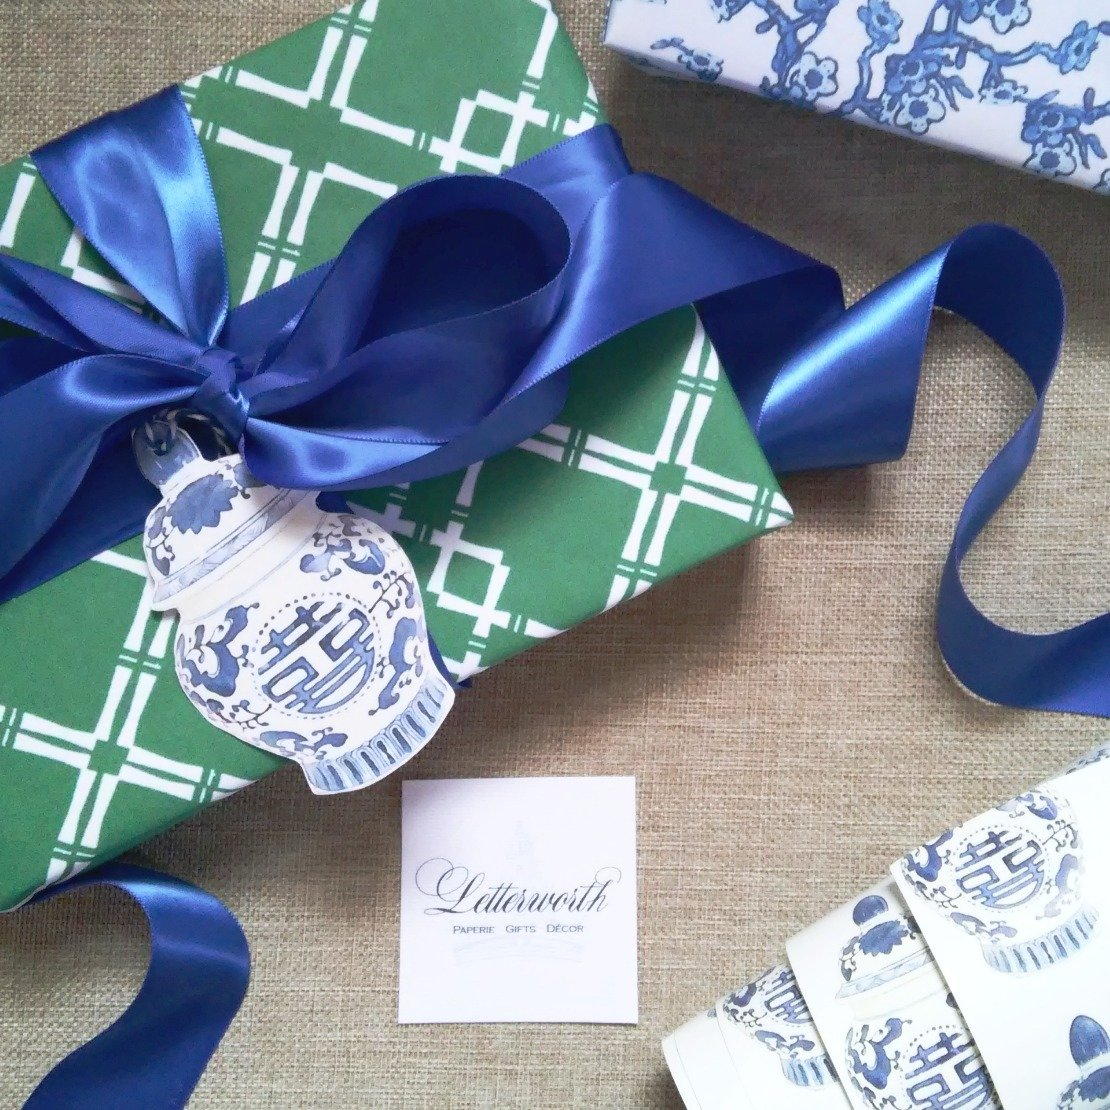 Green and White Chinoiserie Fretwork Gift Wrapping Paper by Letterworth